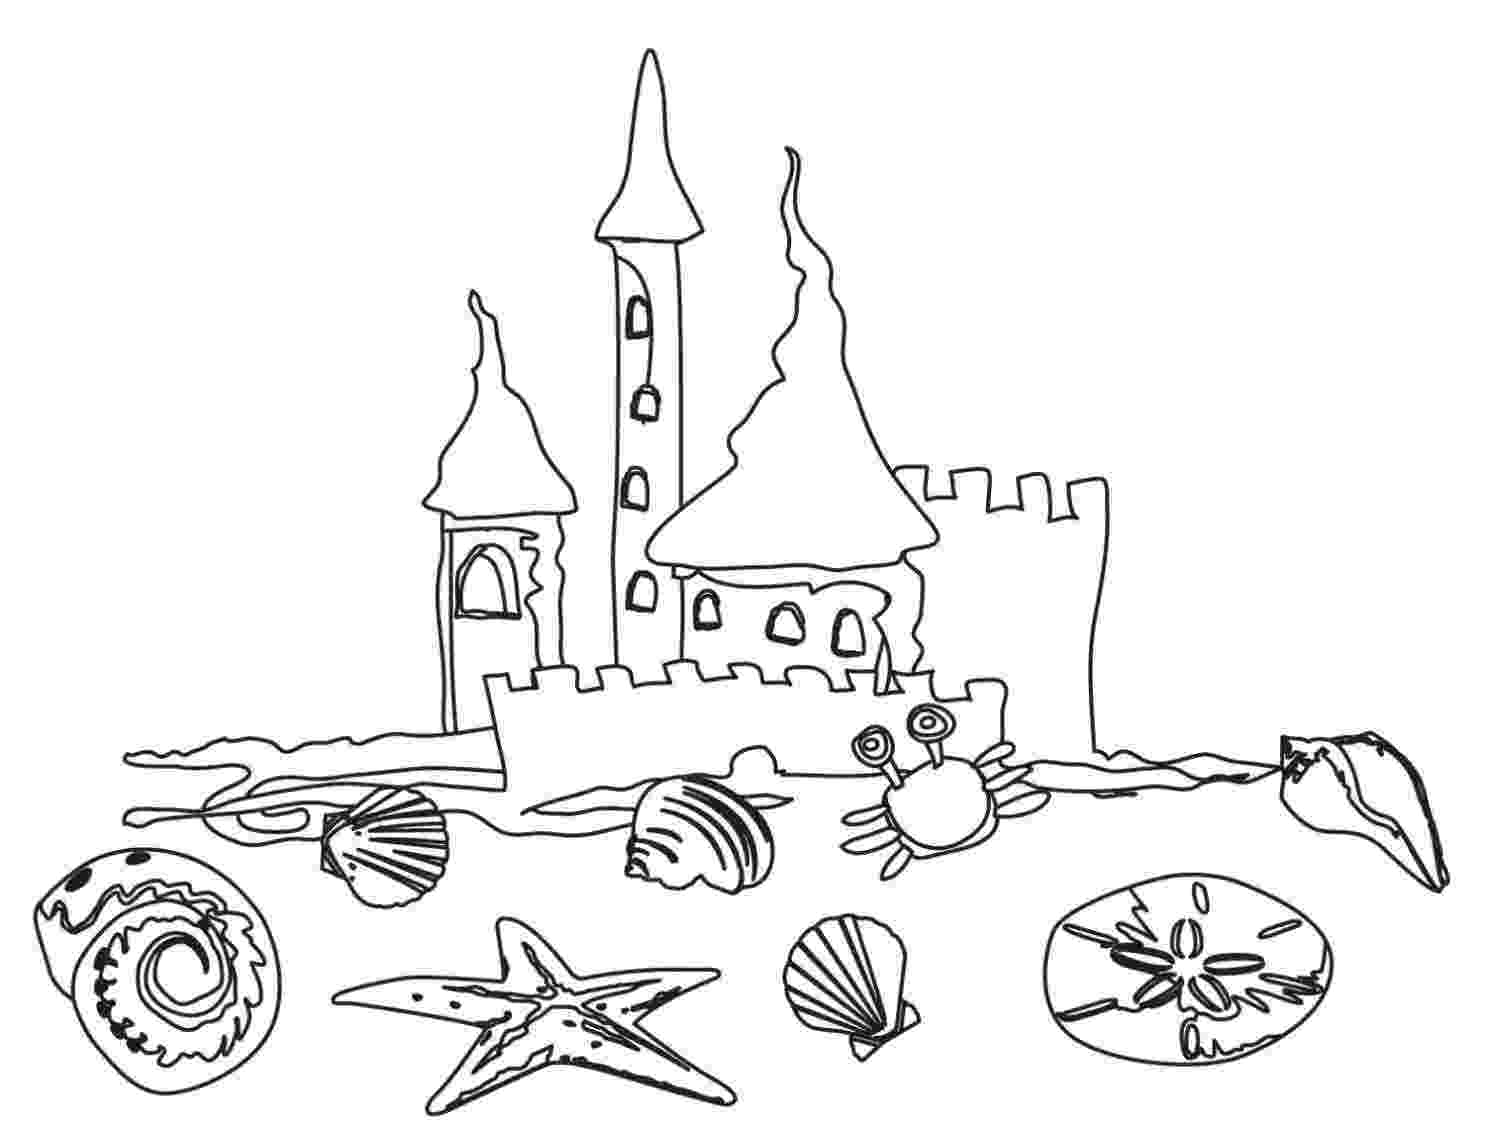 beach coloring page beach scene coloring pages getcoloringpagescom coloring beach page